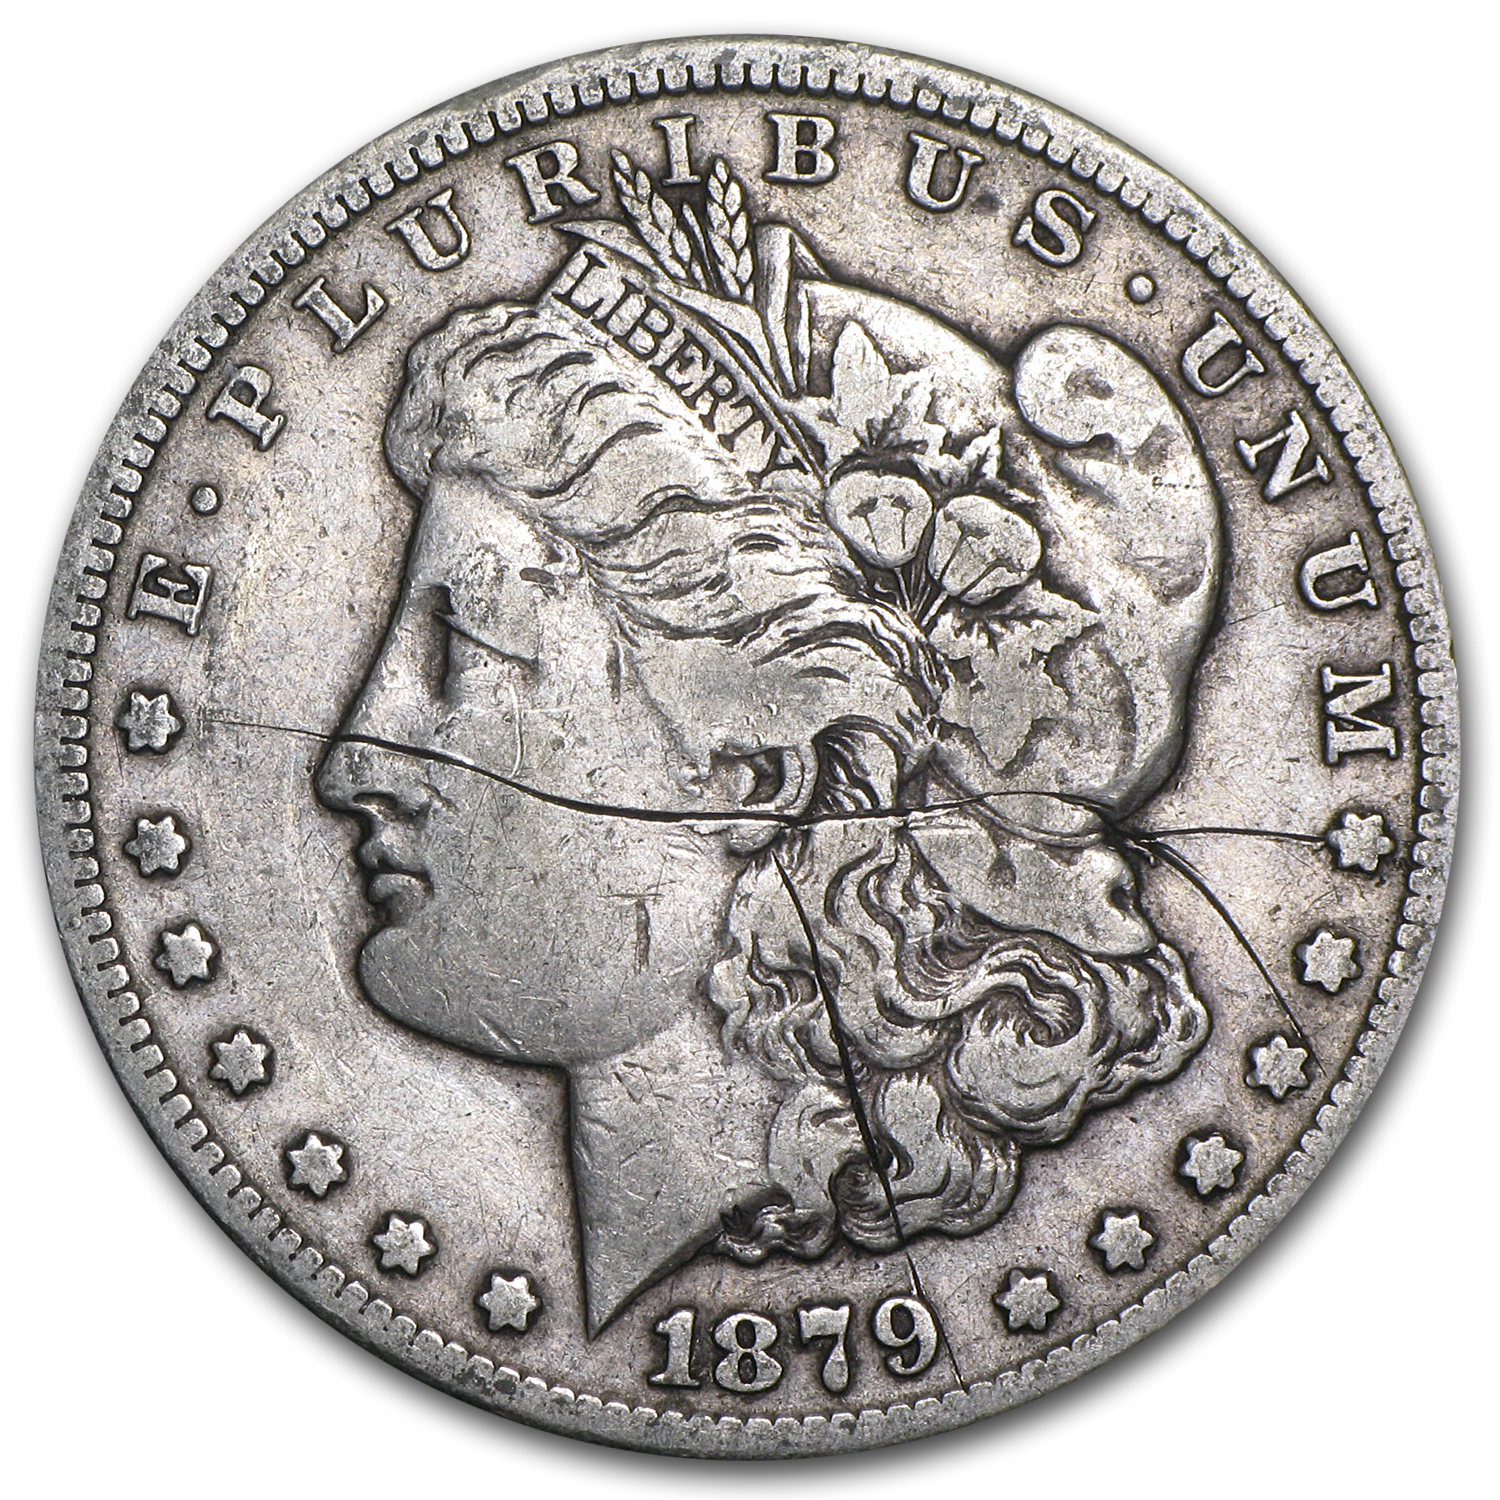 1879-CC Morgan Dollar - (Clear CC) Very Fine Details - Scratches